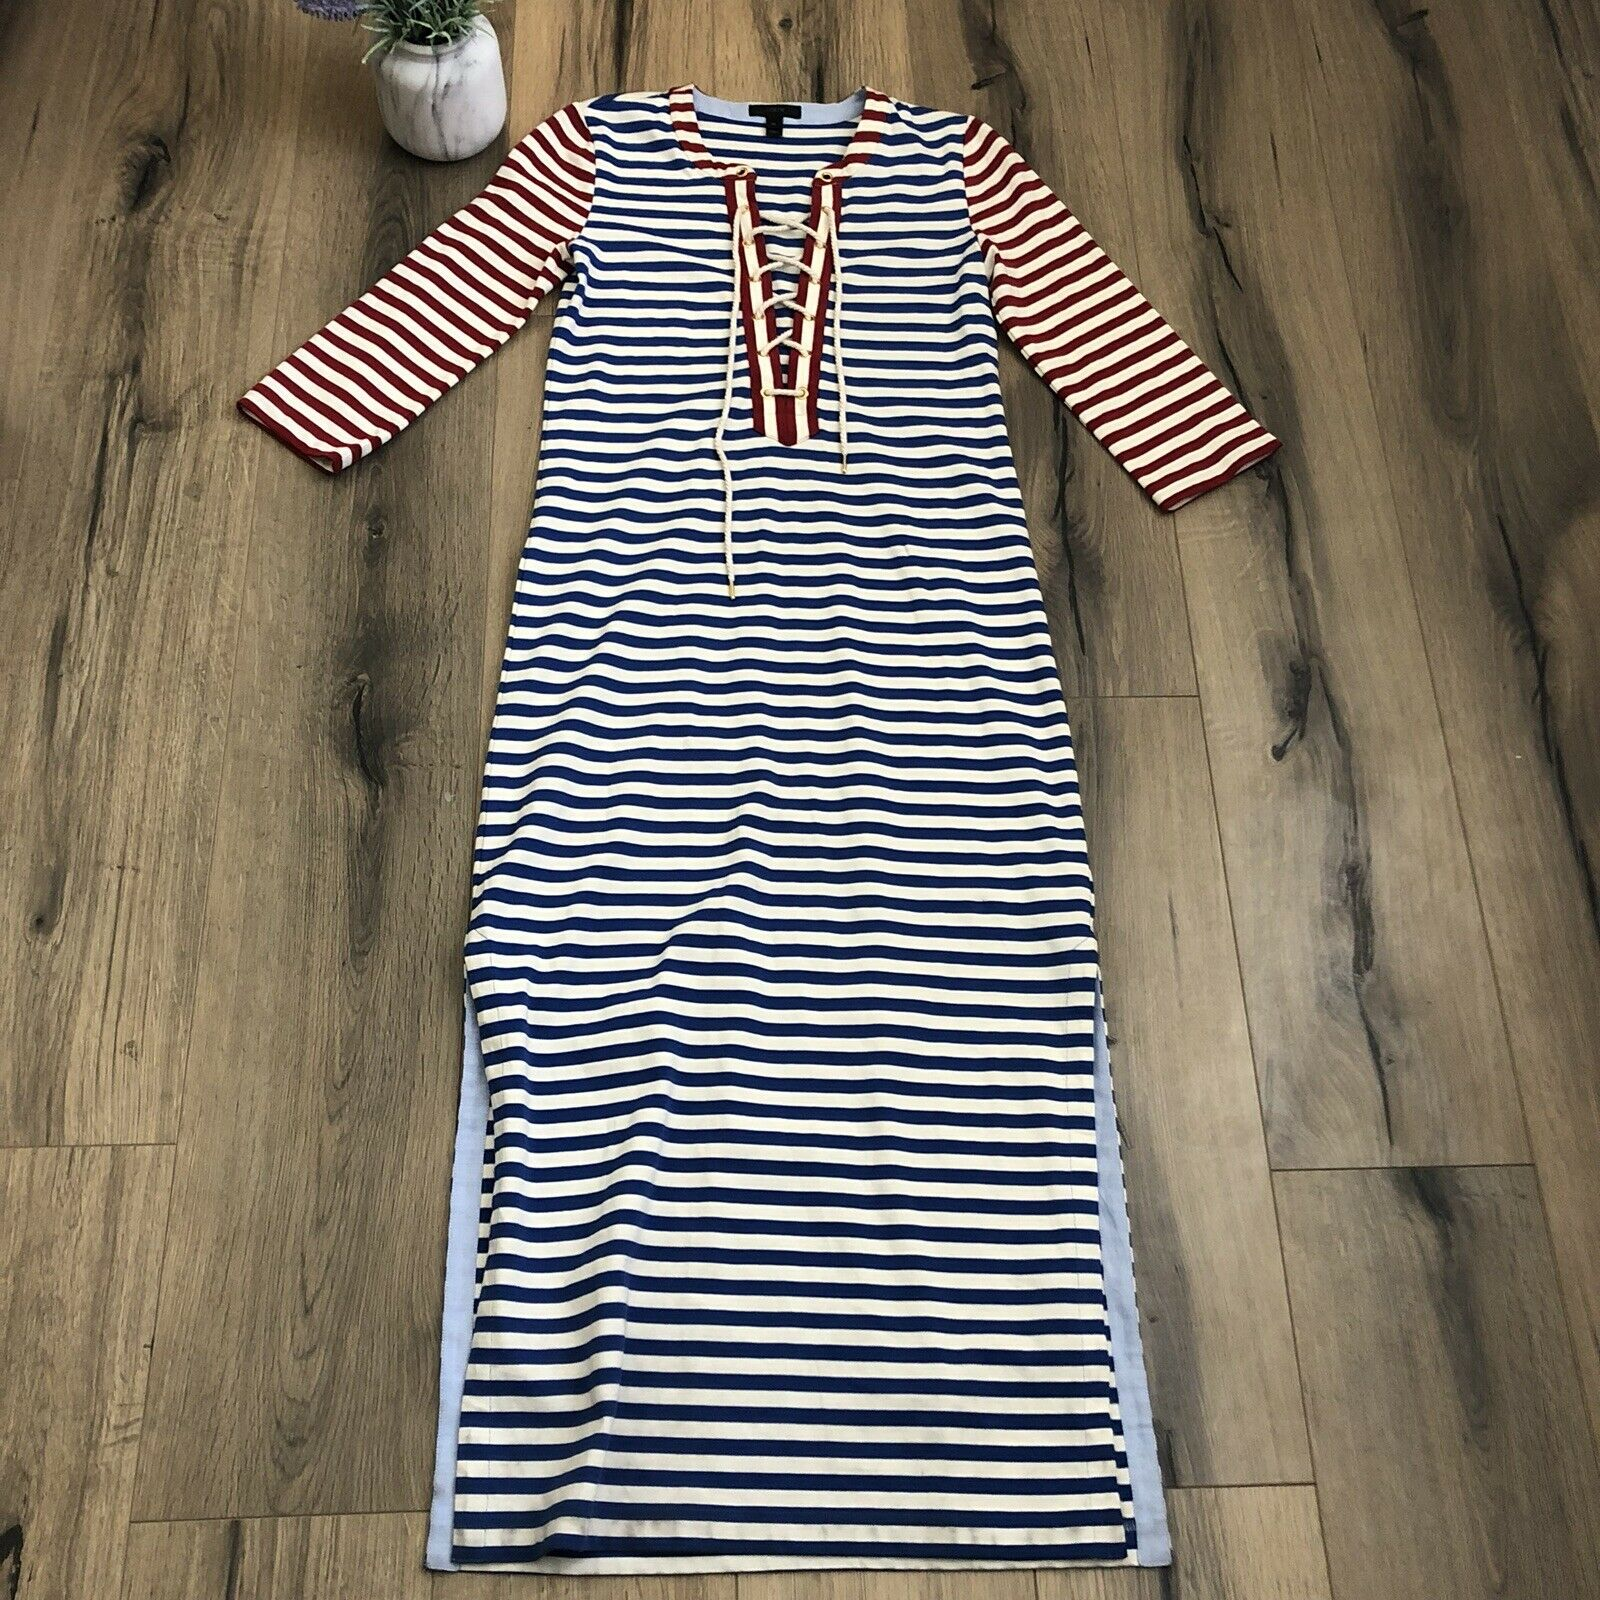 cb8646d5433b8c J Crew damen XS Dress Striped Lace Up Nautical Stretch Maxi 3 4 Sleeves  Cotton